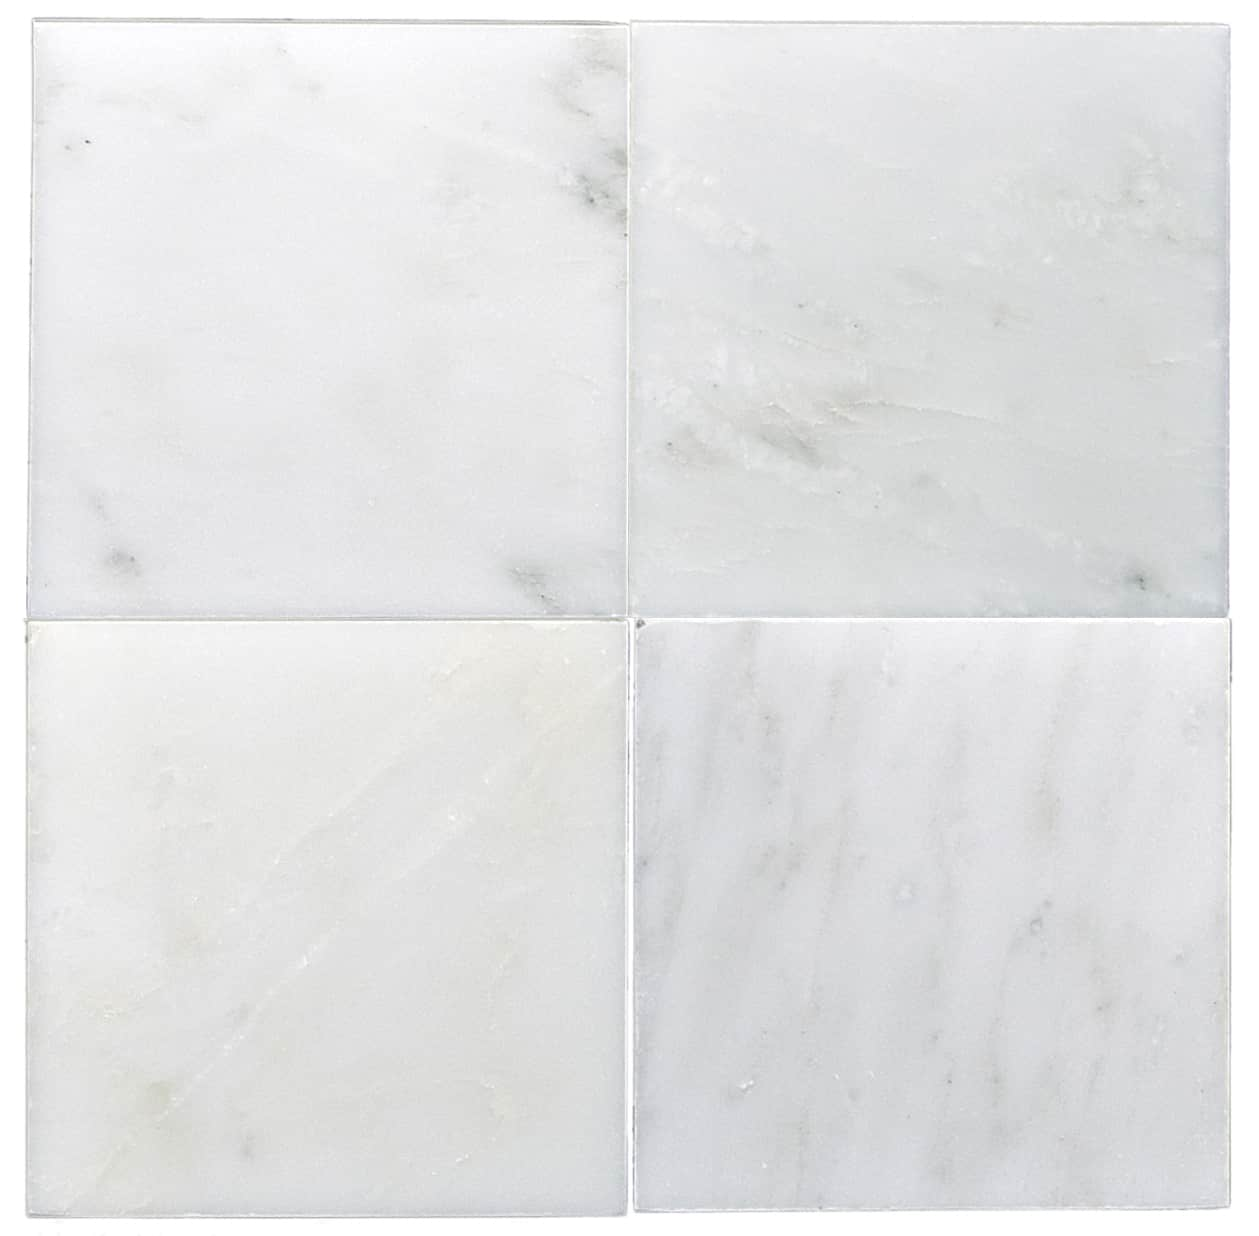 White marble tile texture 64 textures architecture tiles interior white marble tile texture dailygadgetfo Gallery